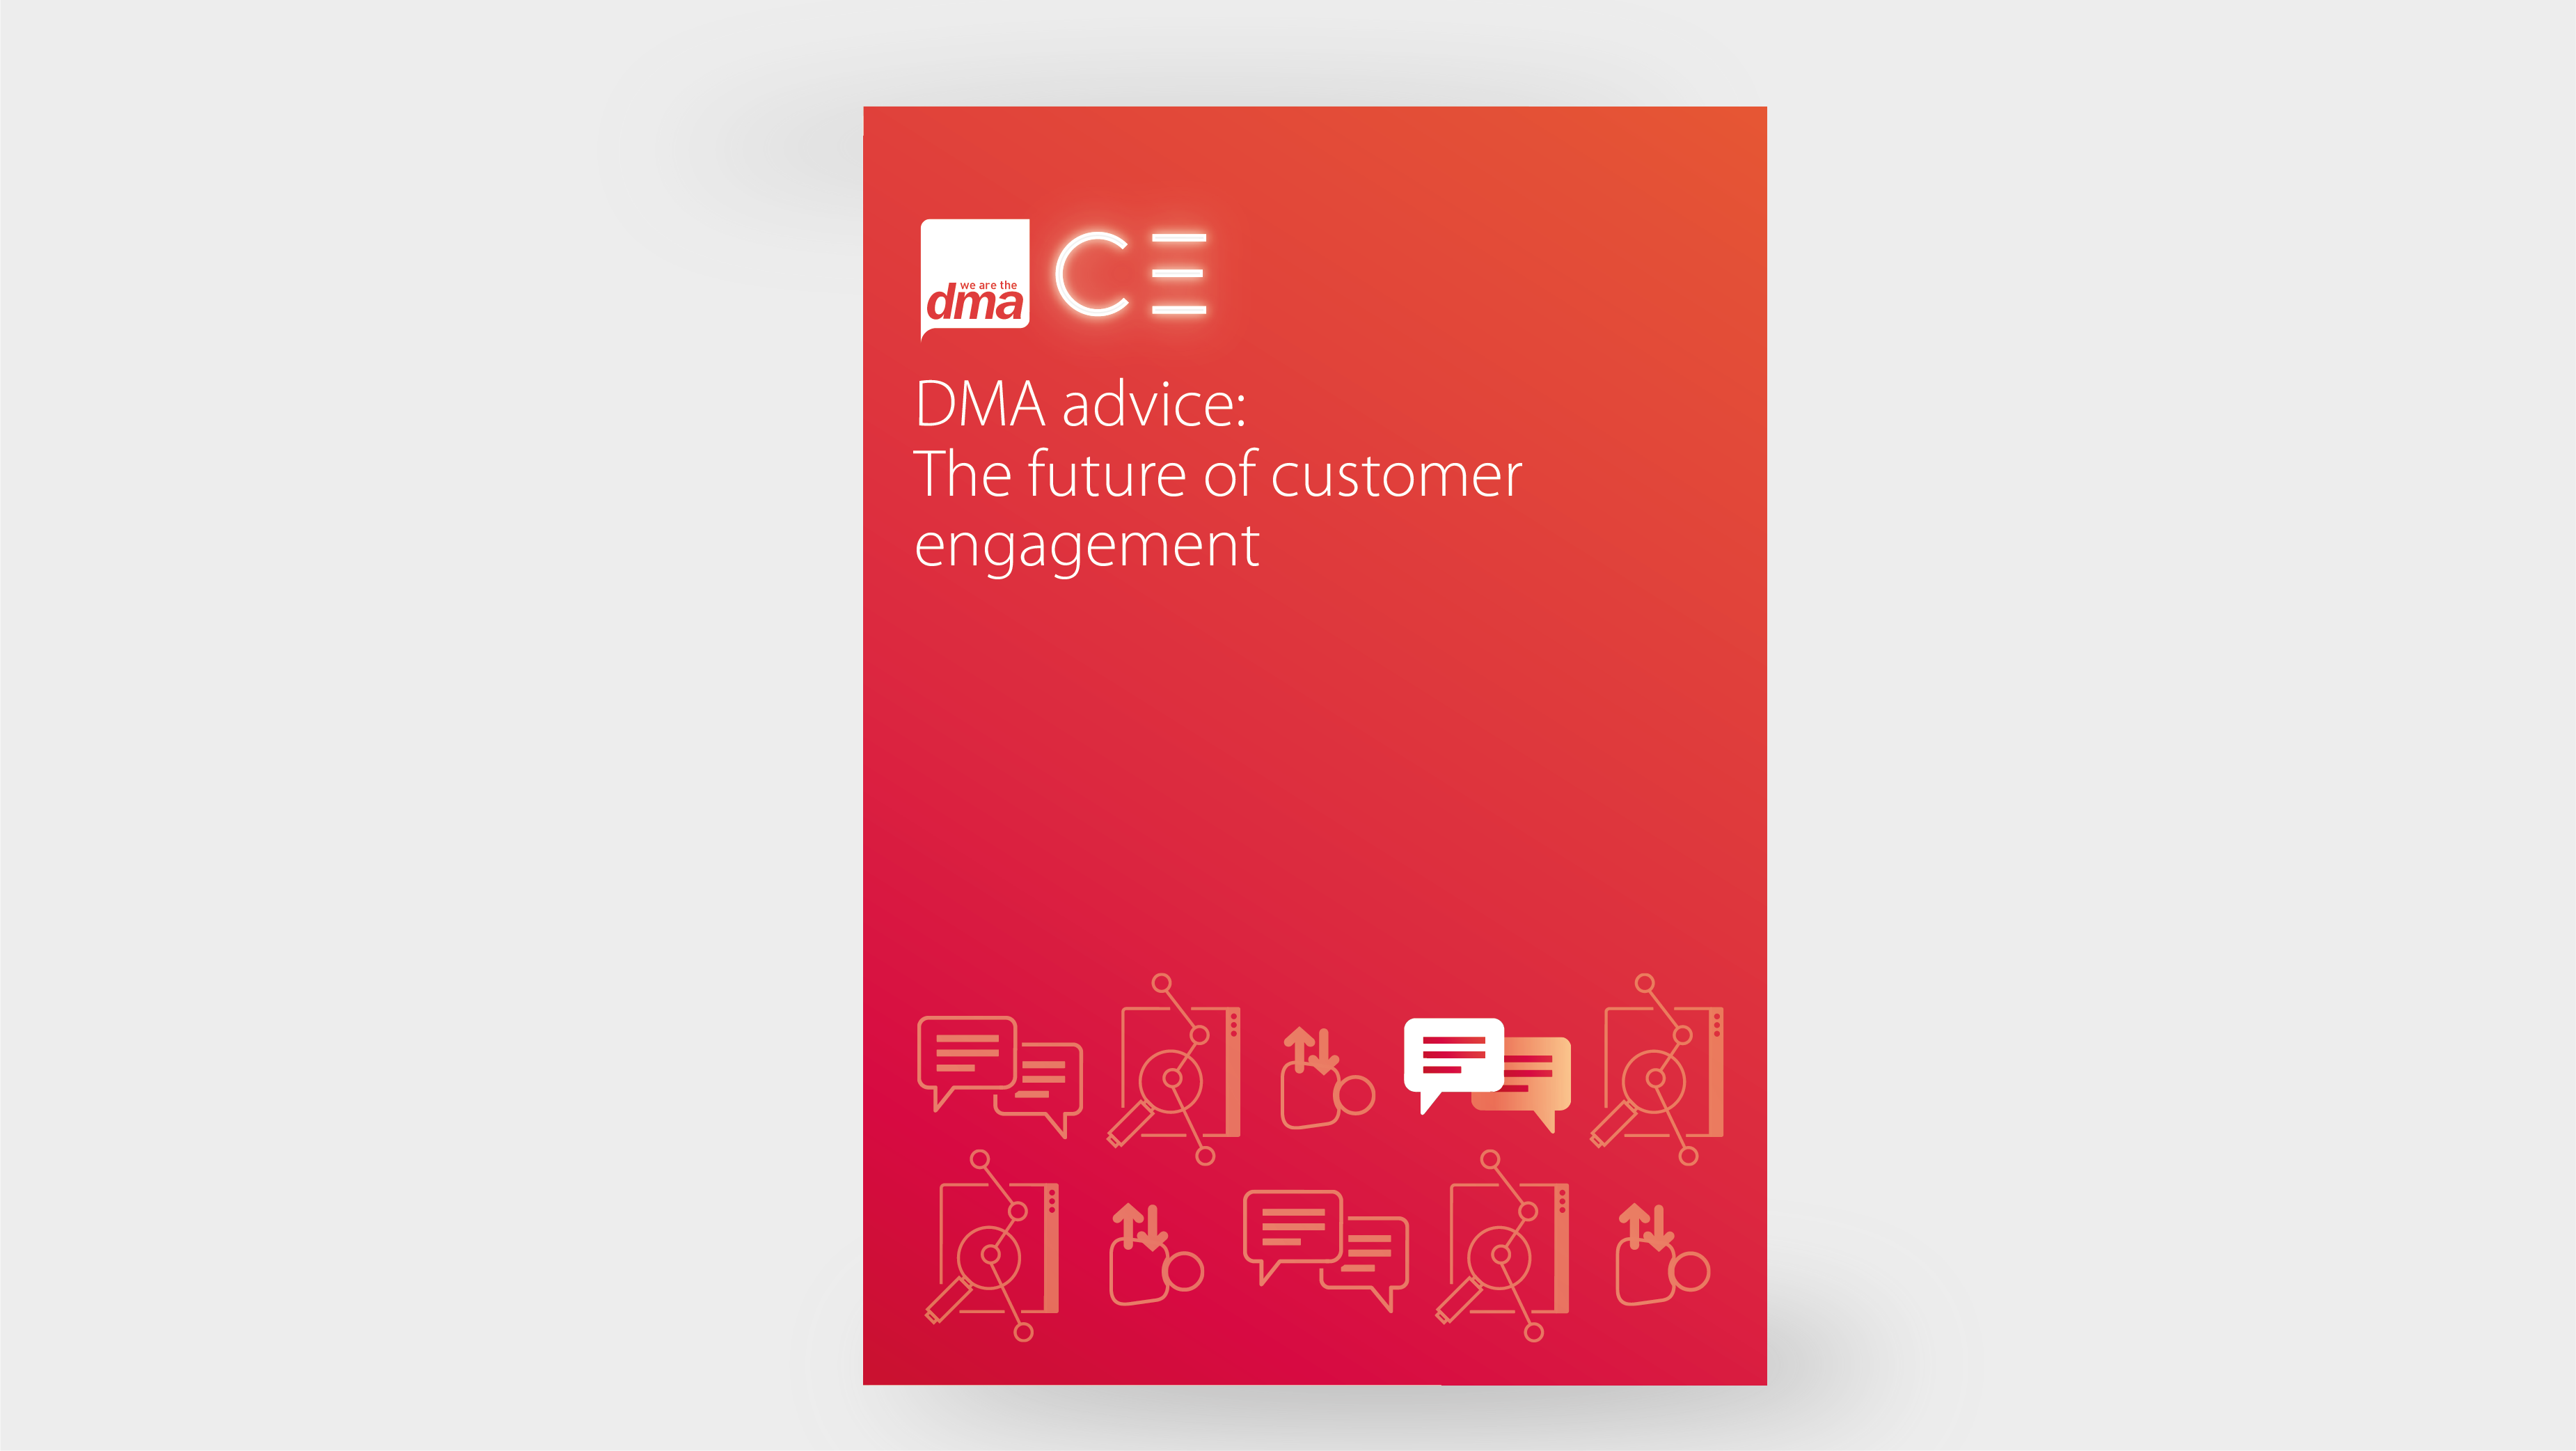 CE-DMA-Advice_The-Future-of-customer-engagement-02.png